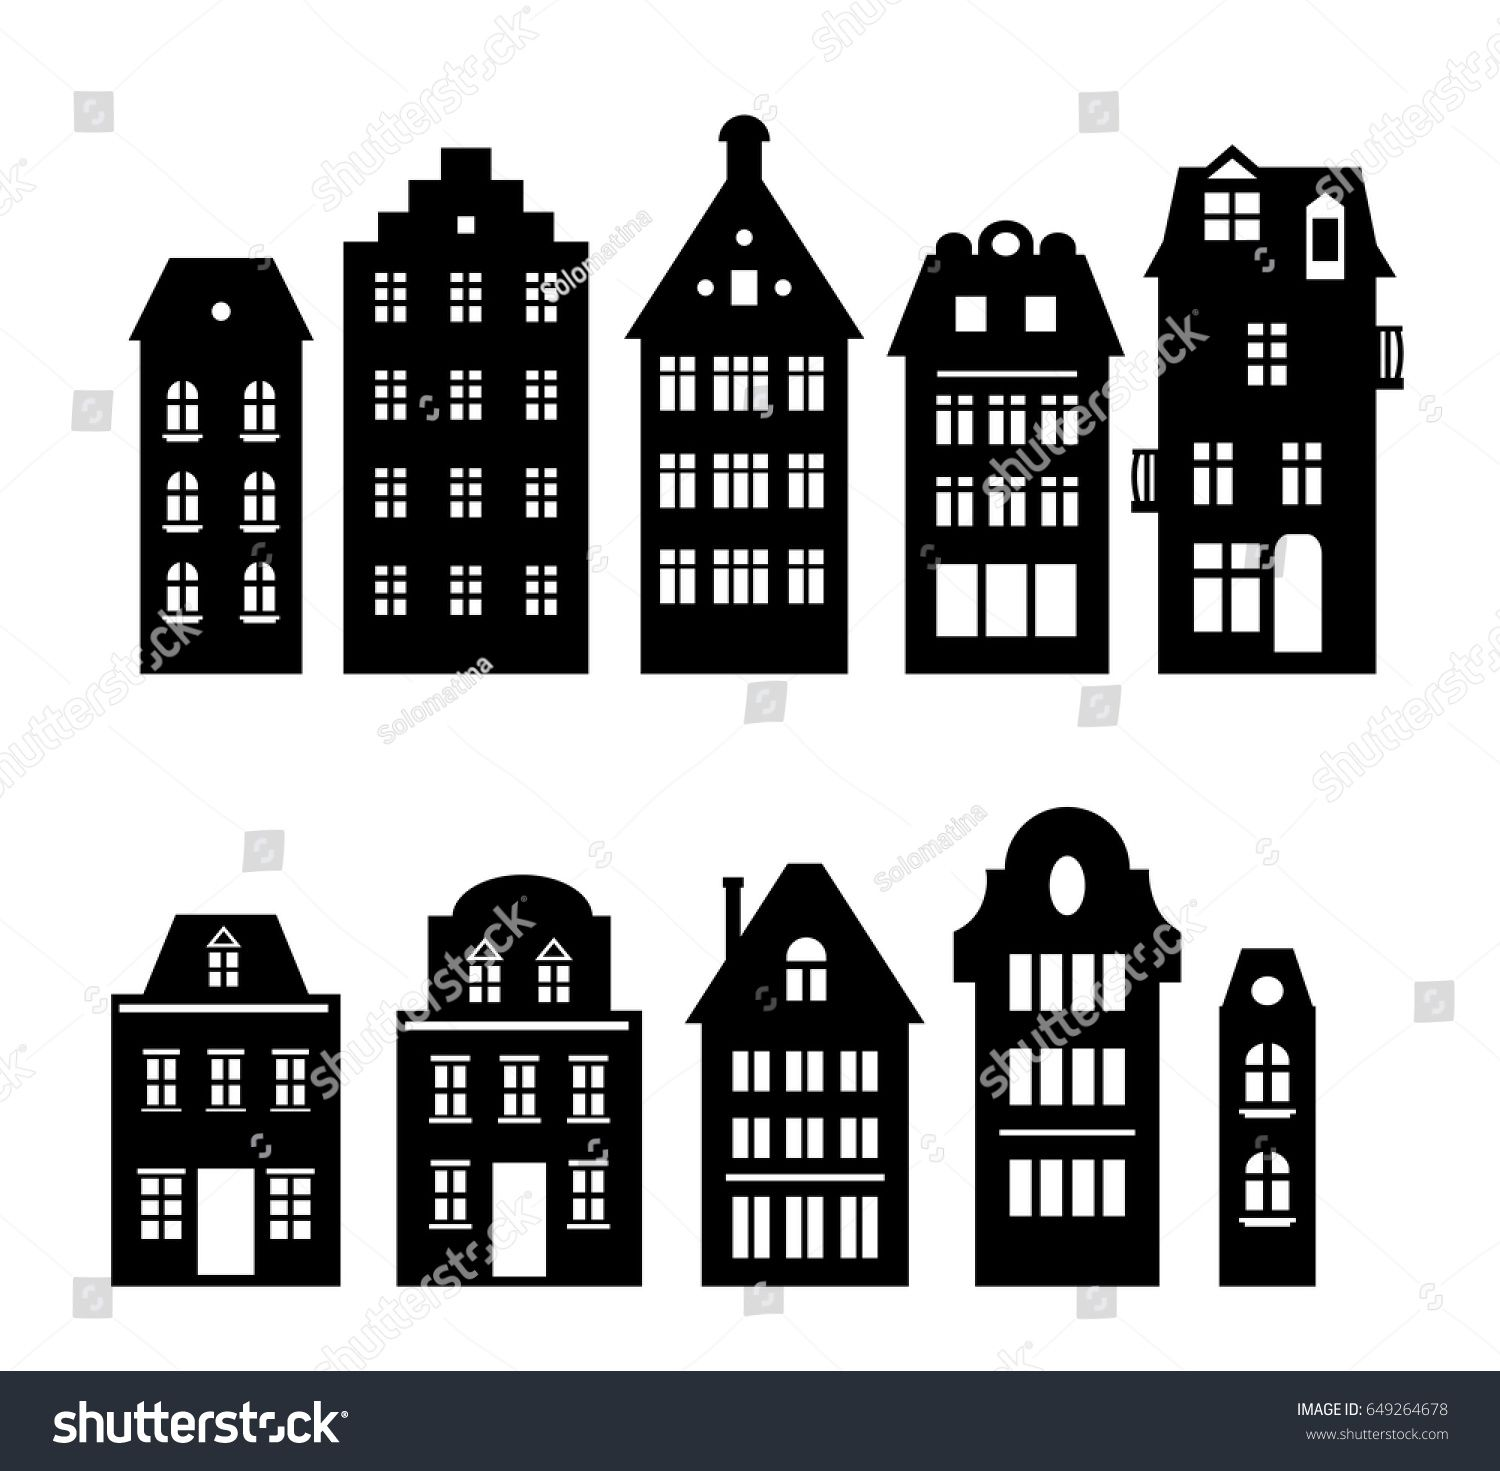 Set of laser cutting Amsterdam style houses Silhouette of a row of